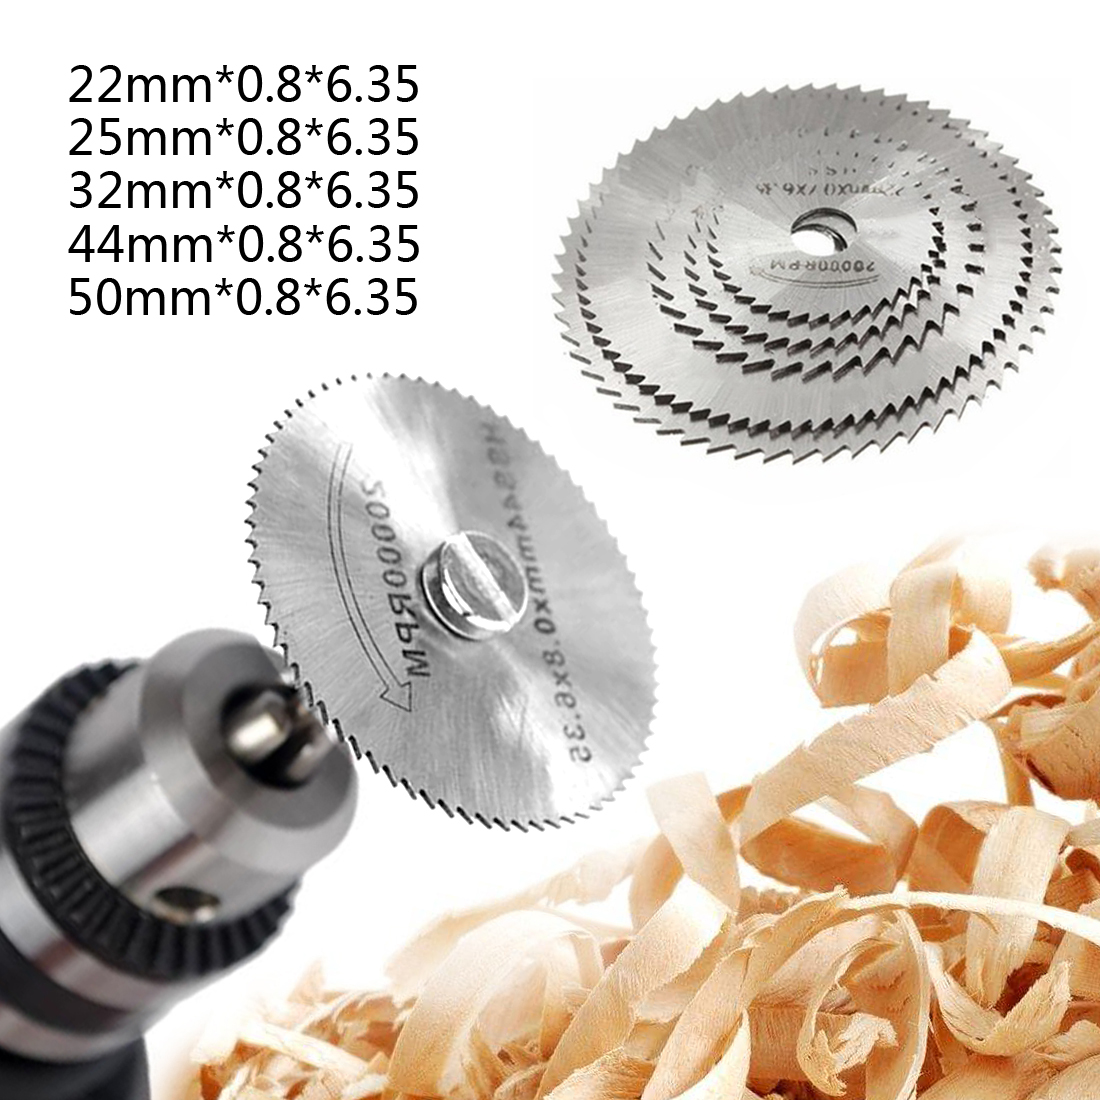 22-50mm Mini HSS Circular Saw Blade Jig Saw Rotary Tool For Dremel Metal Cutter Power Tool Set Wood Cutting Discs Drill Mandrel 6pcs hss circular saw blade cutting discs wheel set for rotary tool